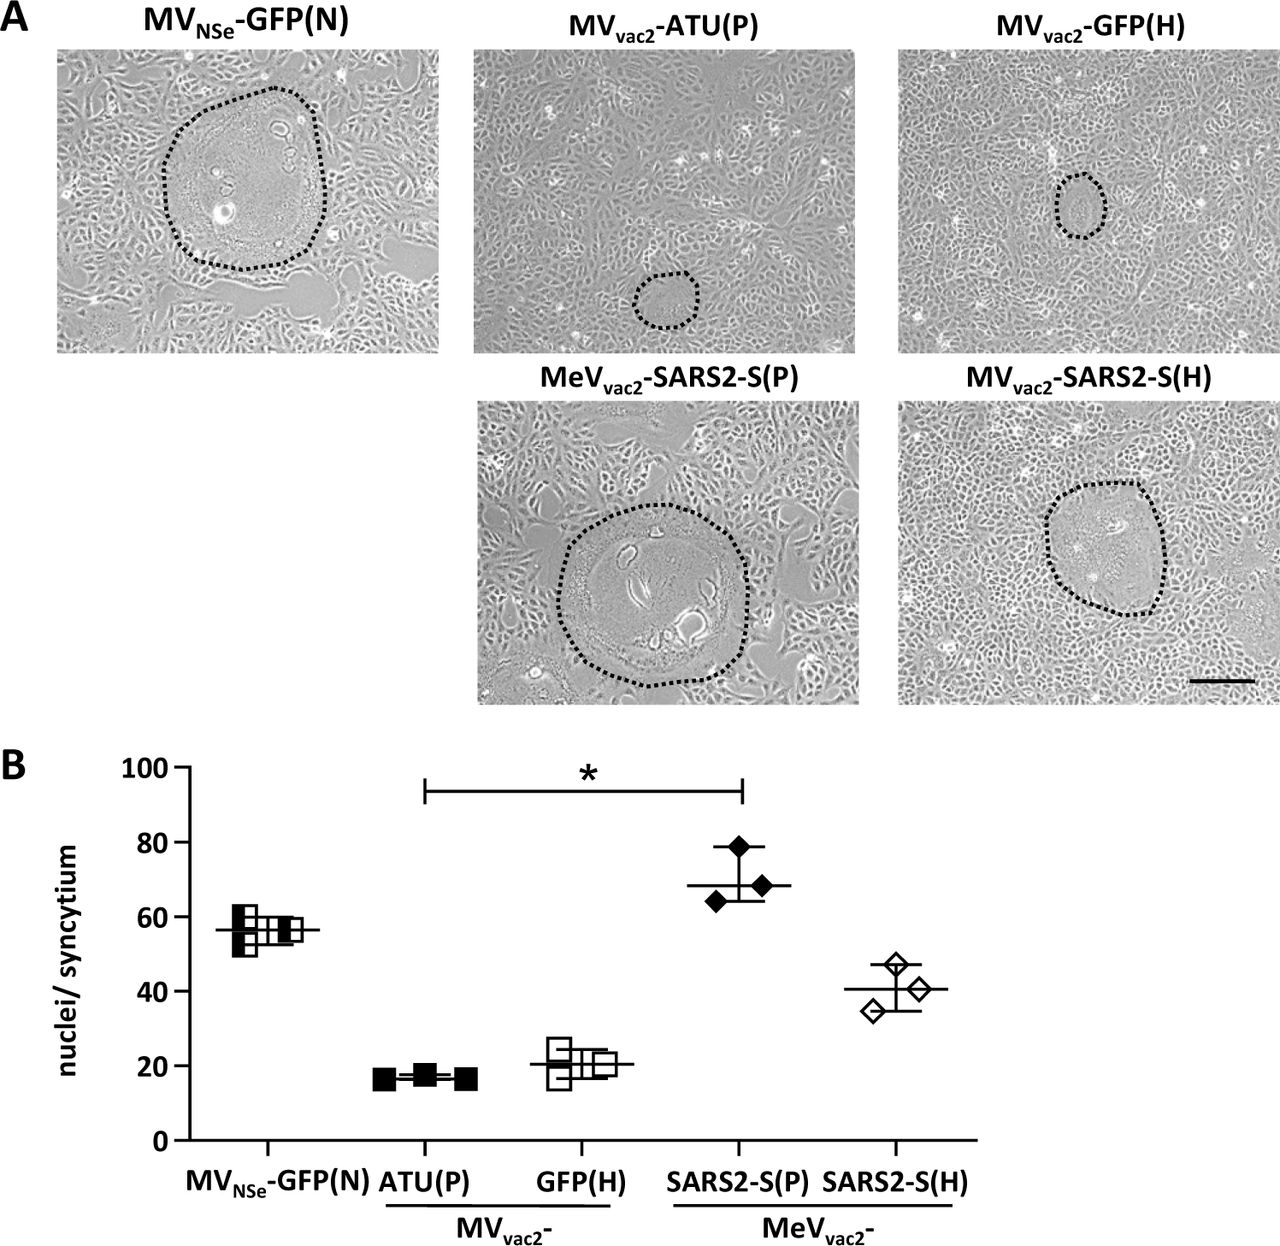 Characterization of fusogenic phenotype of MeV vac2 -SARS2-S(P) and MeV vac2 -SARS2-S(H). (A ) Photographs of fusion activity of Vero cells infected at an MOI of 0.01 with MeV vac2 -SARS2-S(P) or MeVvac2-SARS2-S(H) encoding SARS-CoV-2 S in additional transcription units post P or post H, respectively, in direct comparison to MV vac2 -ATU(P) or MV vac2 -GFP(H) control vaccine viruses or MV NSe -GFP(N) hyperfusogenic oncolytic MeV. Representative picture of one out of three independent experiments. Scale bar represents 200 mm. ( B ) Cell fusion was quantified 30 h after infection. For statistical analysis, one-way ANOVA was performed in combination with Tukey's Multi comparison test to compare all pair means. *, p